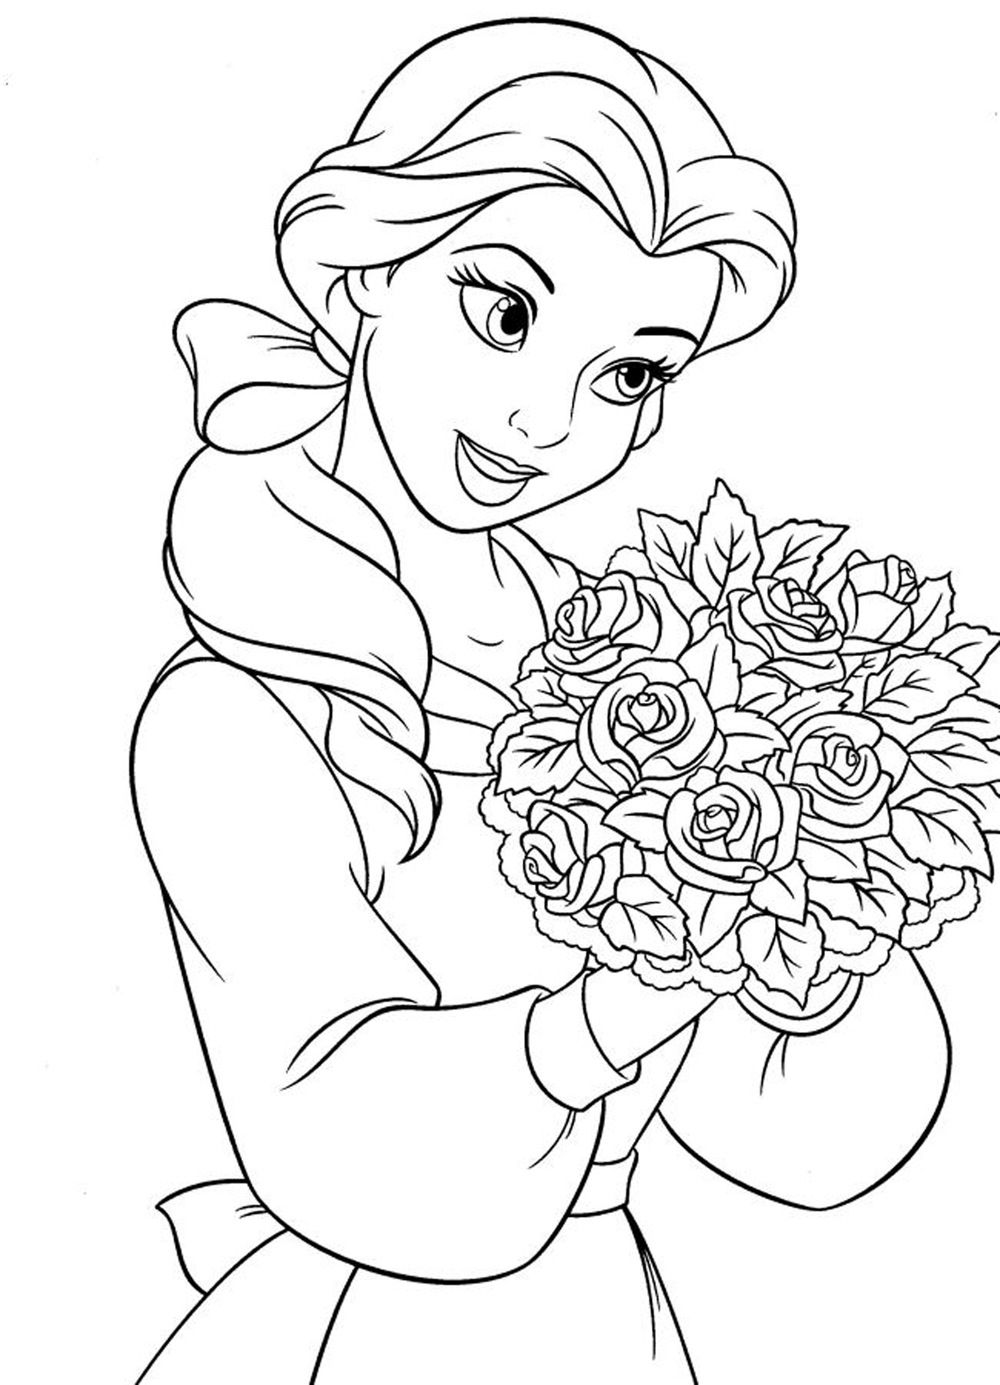 Disney princess belle coloring pages games